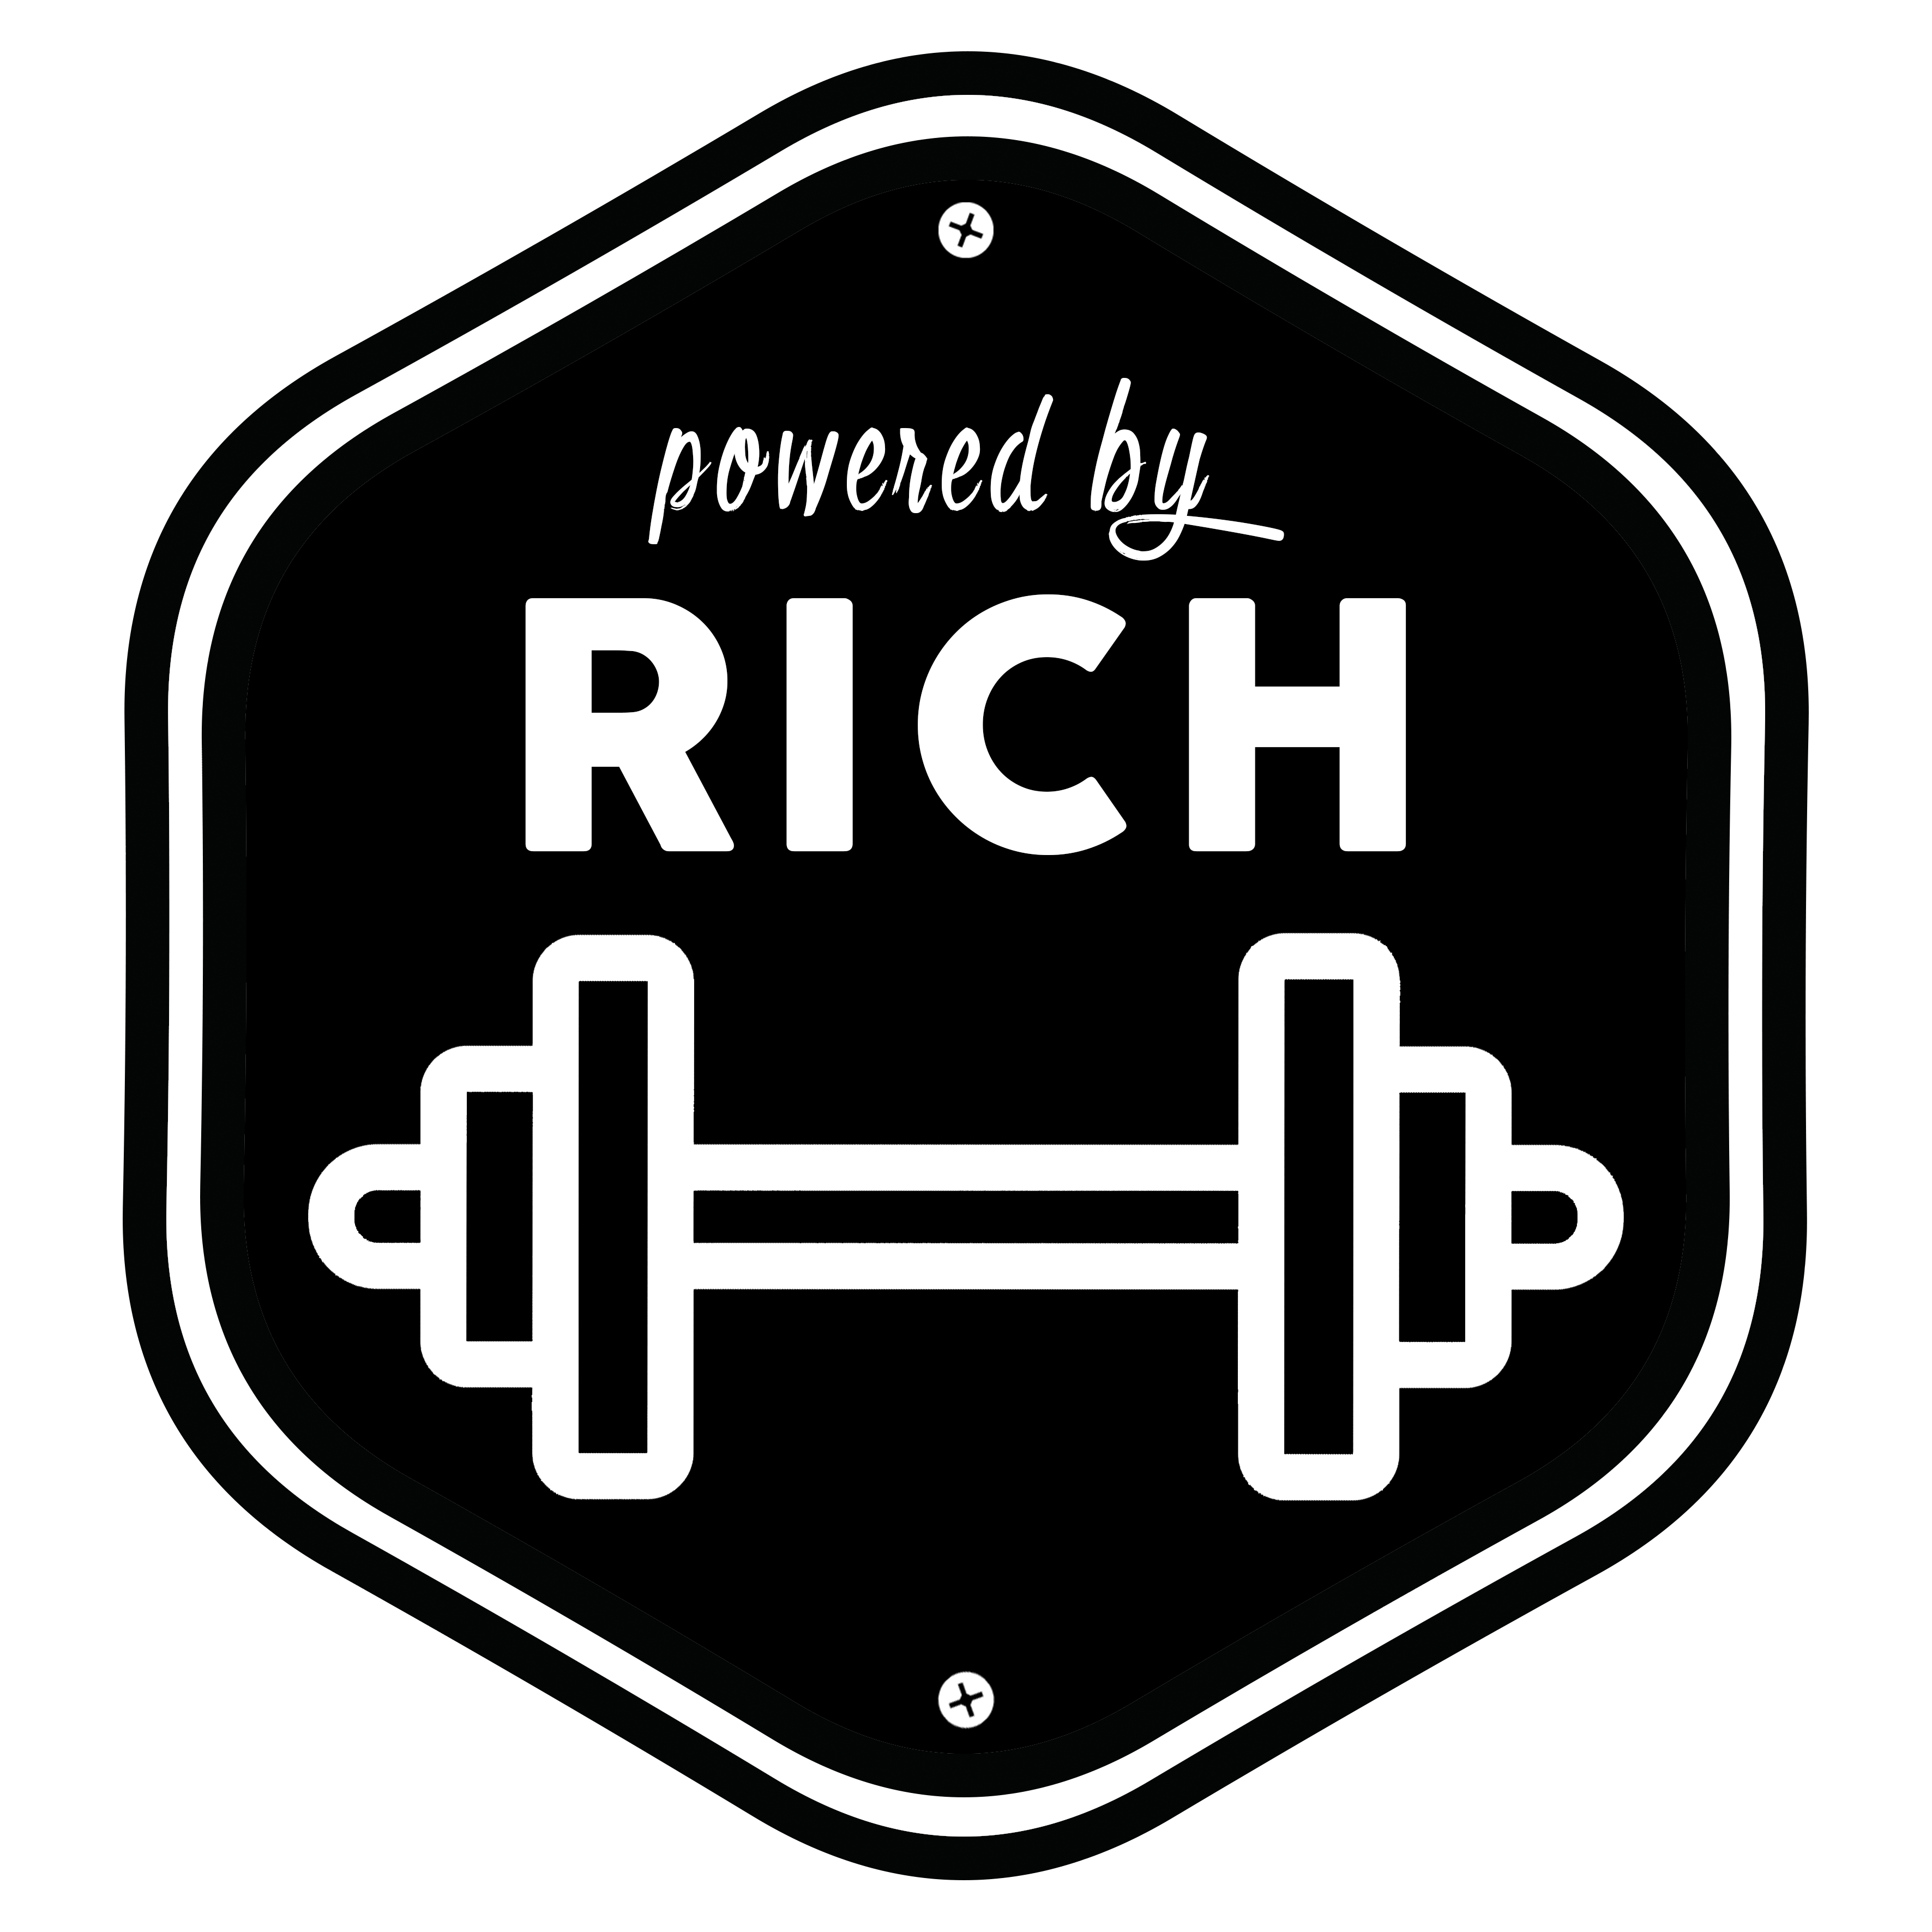 Powered by Rich